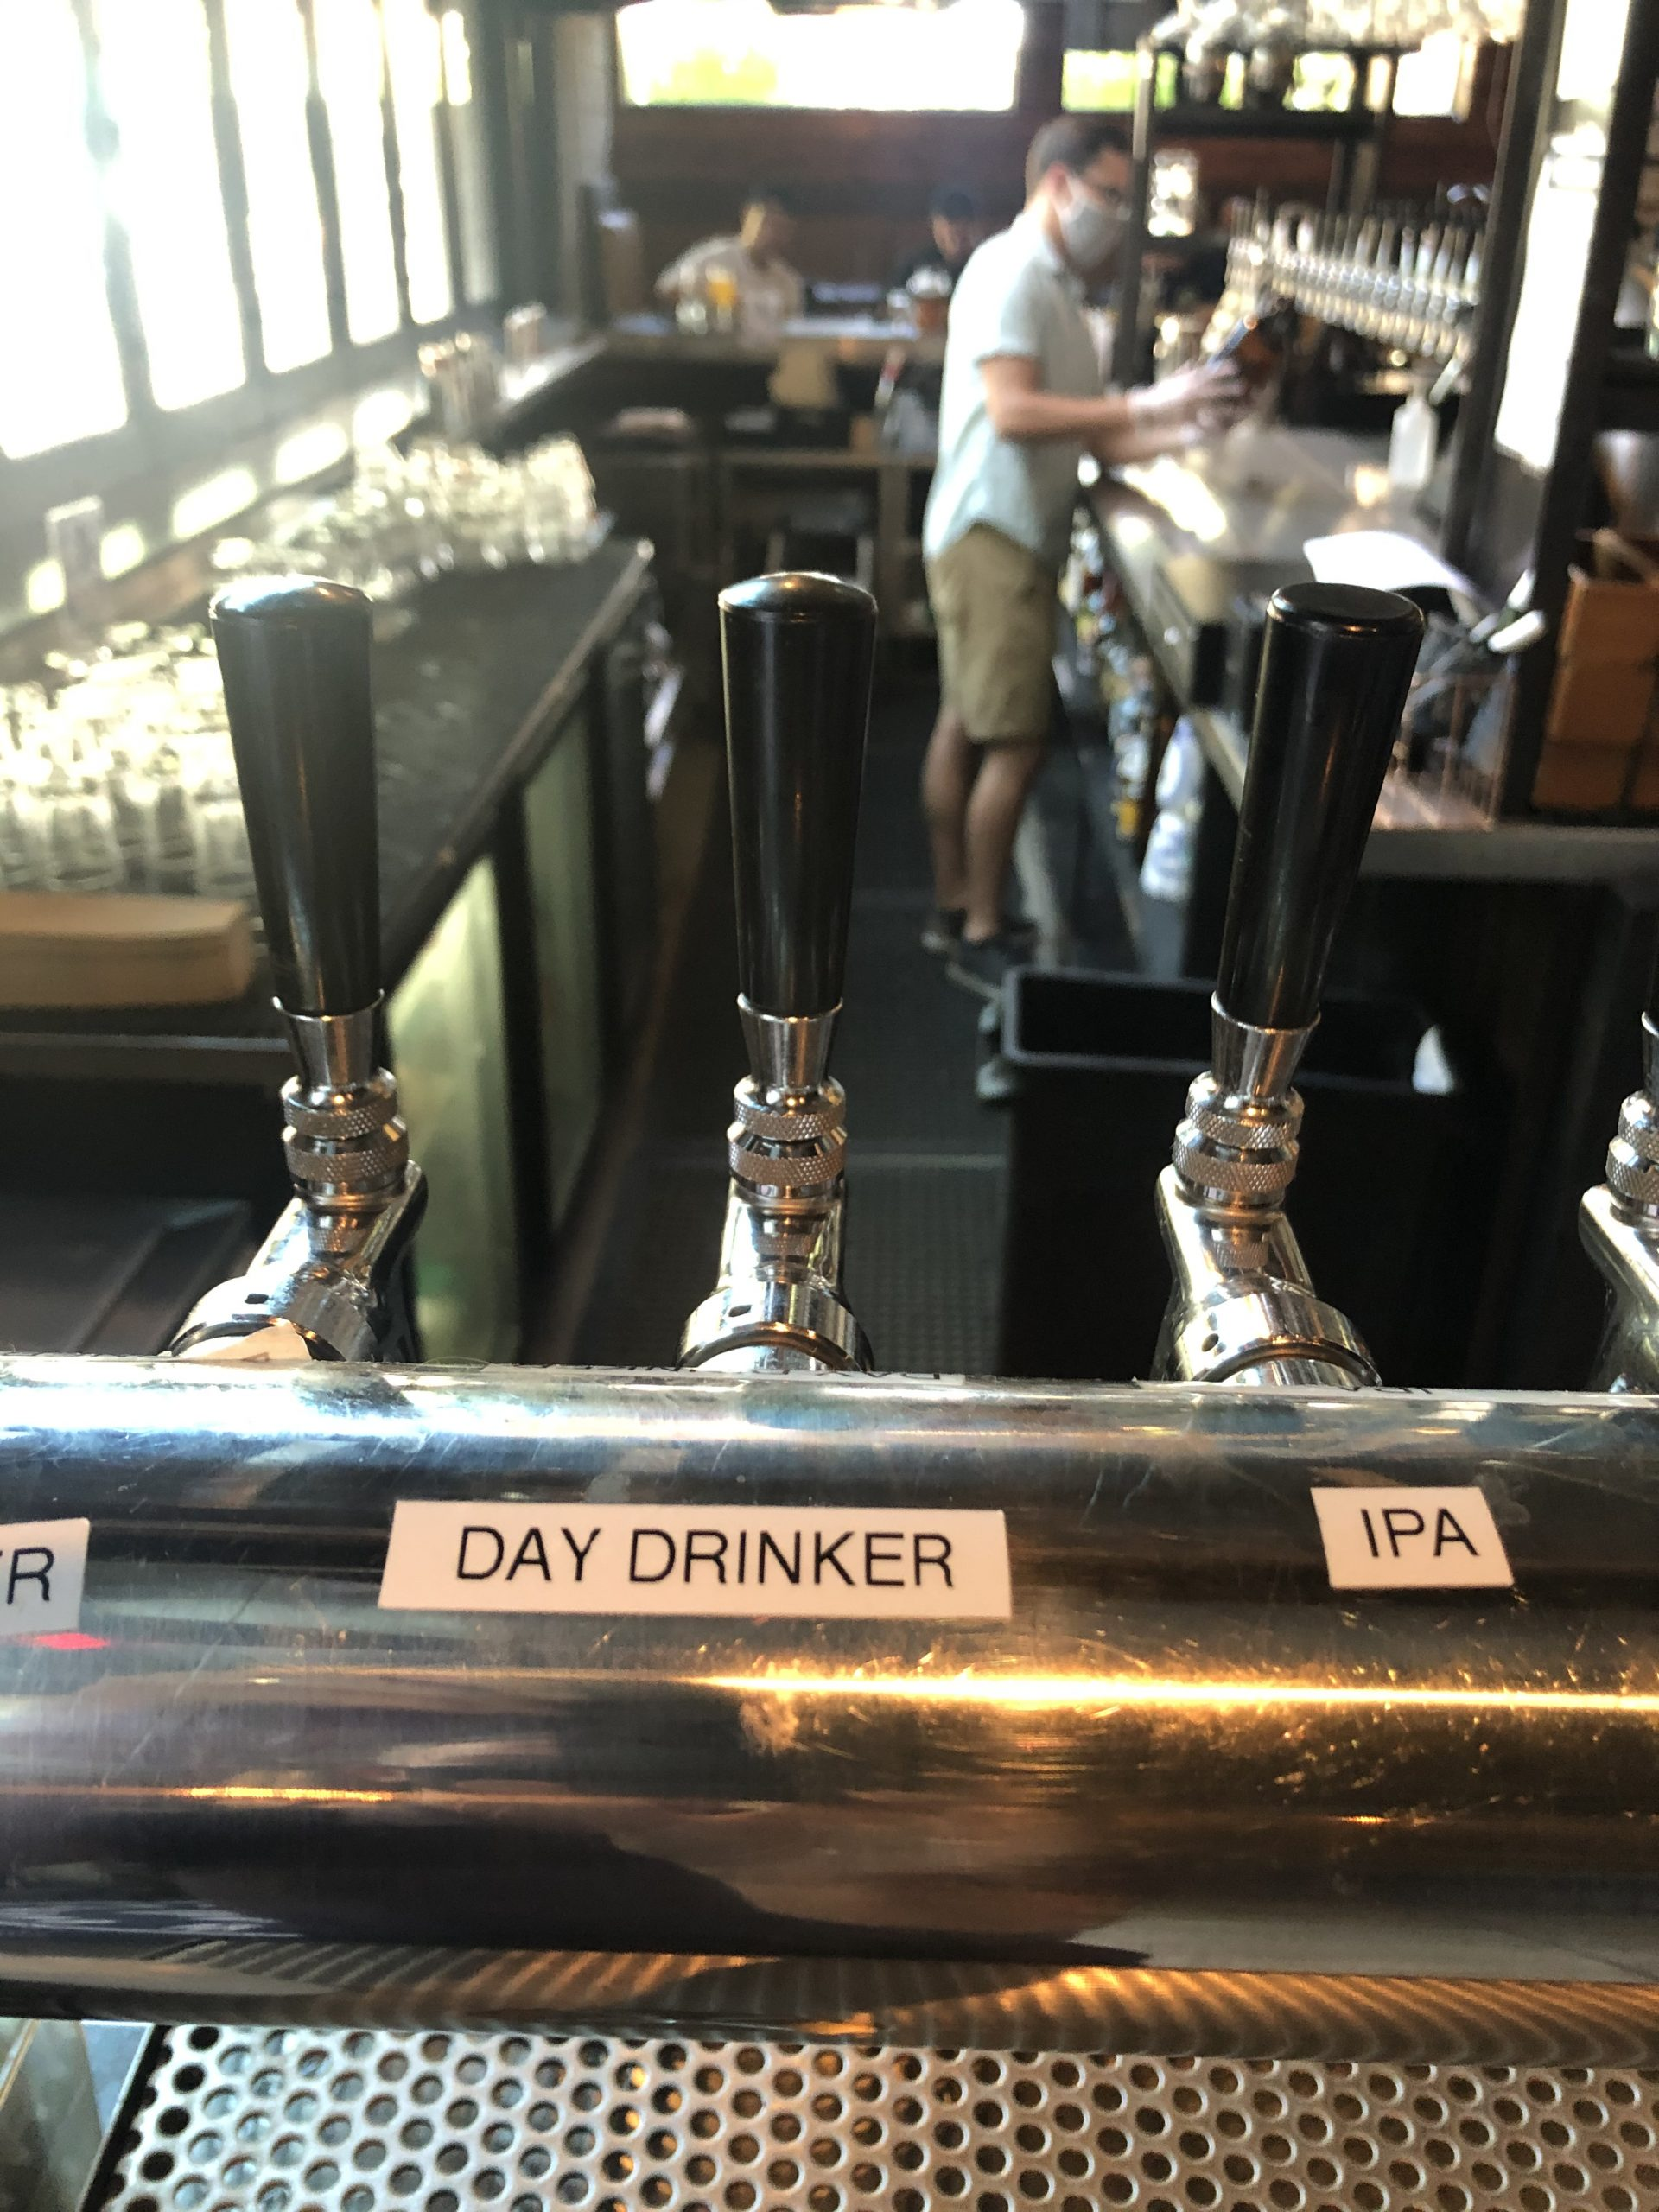 Pedal Haus has 10-16 rotating beers on tap in Tempe